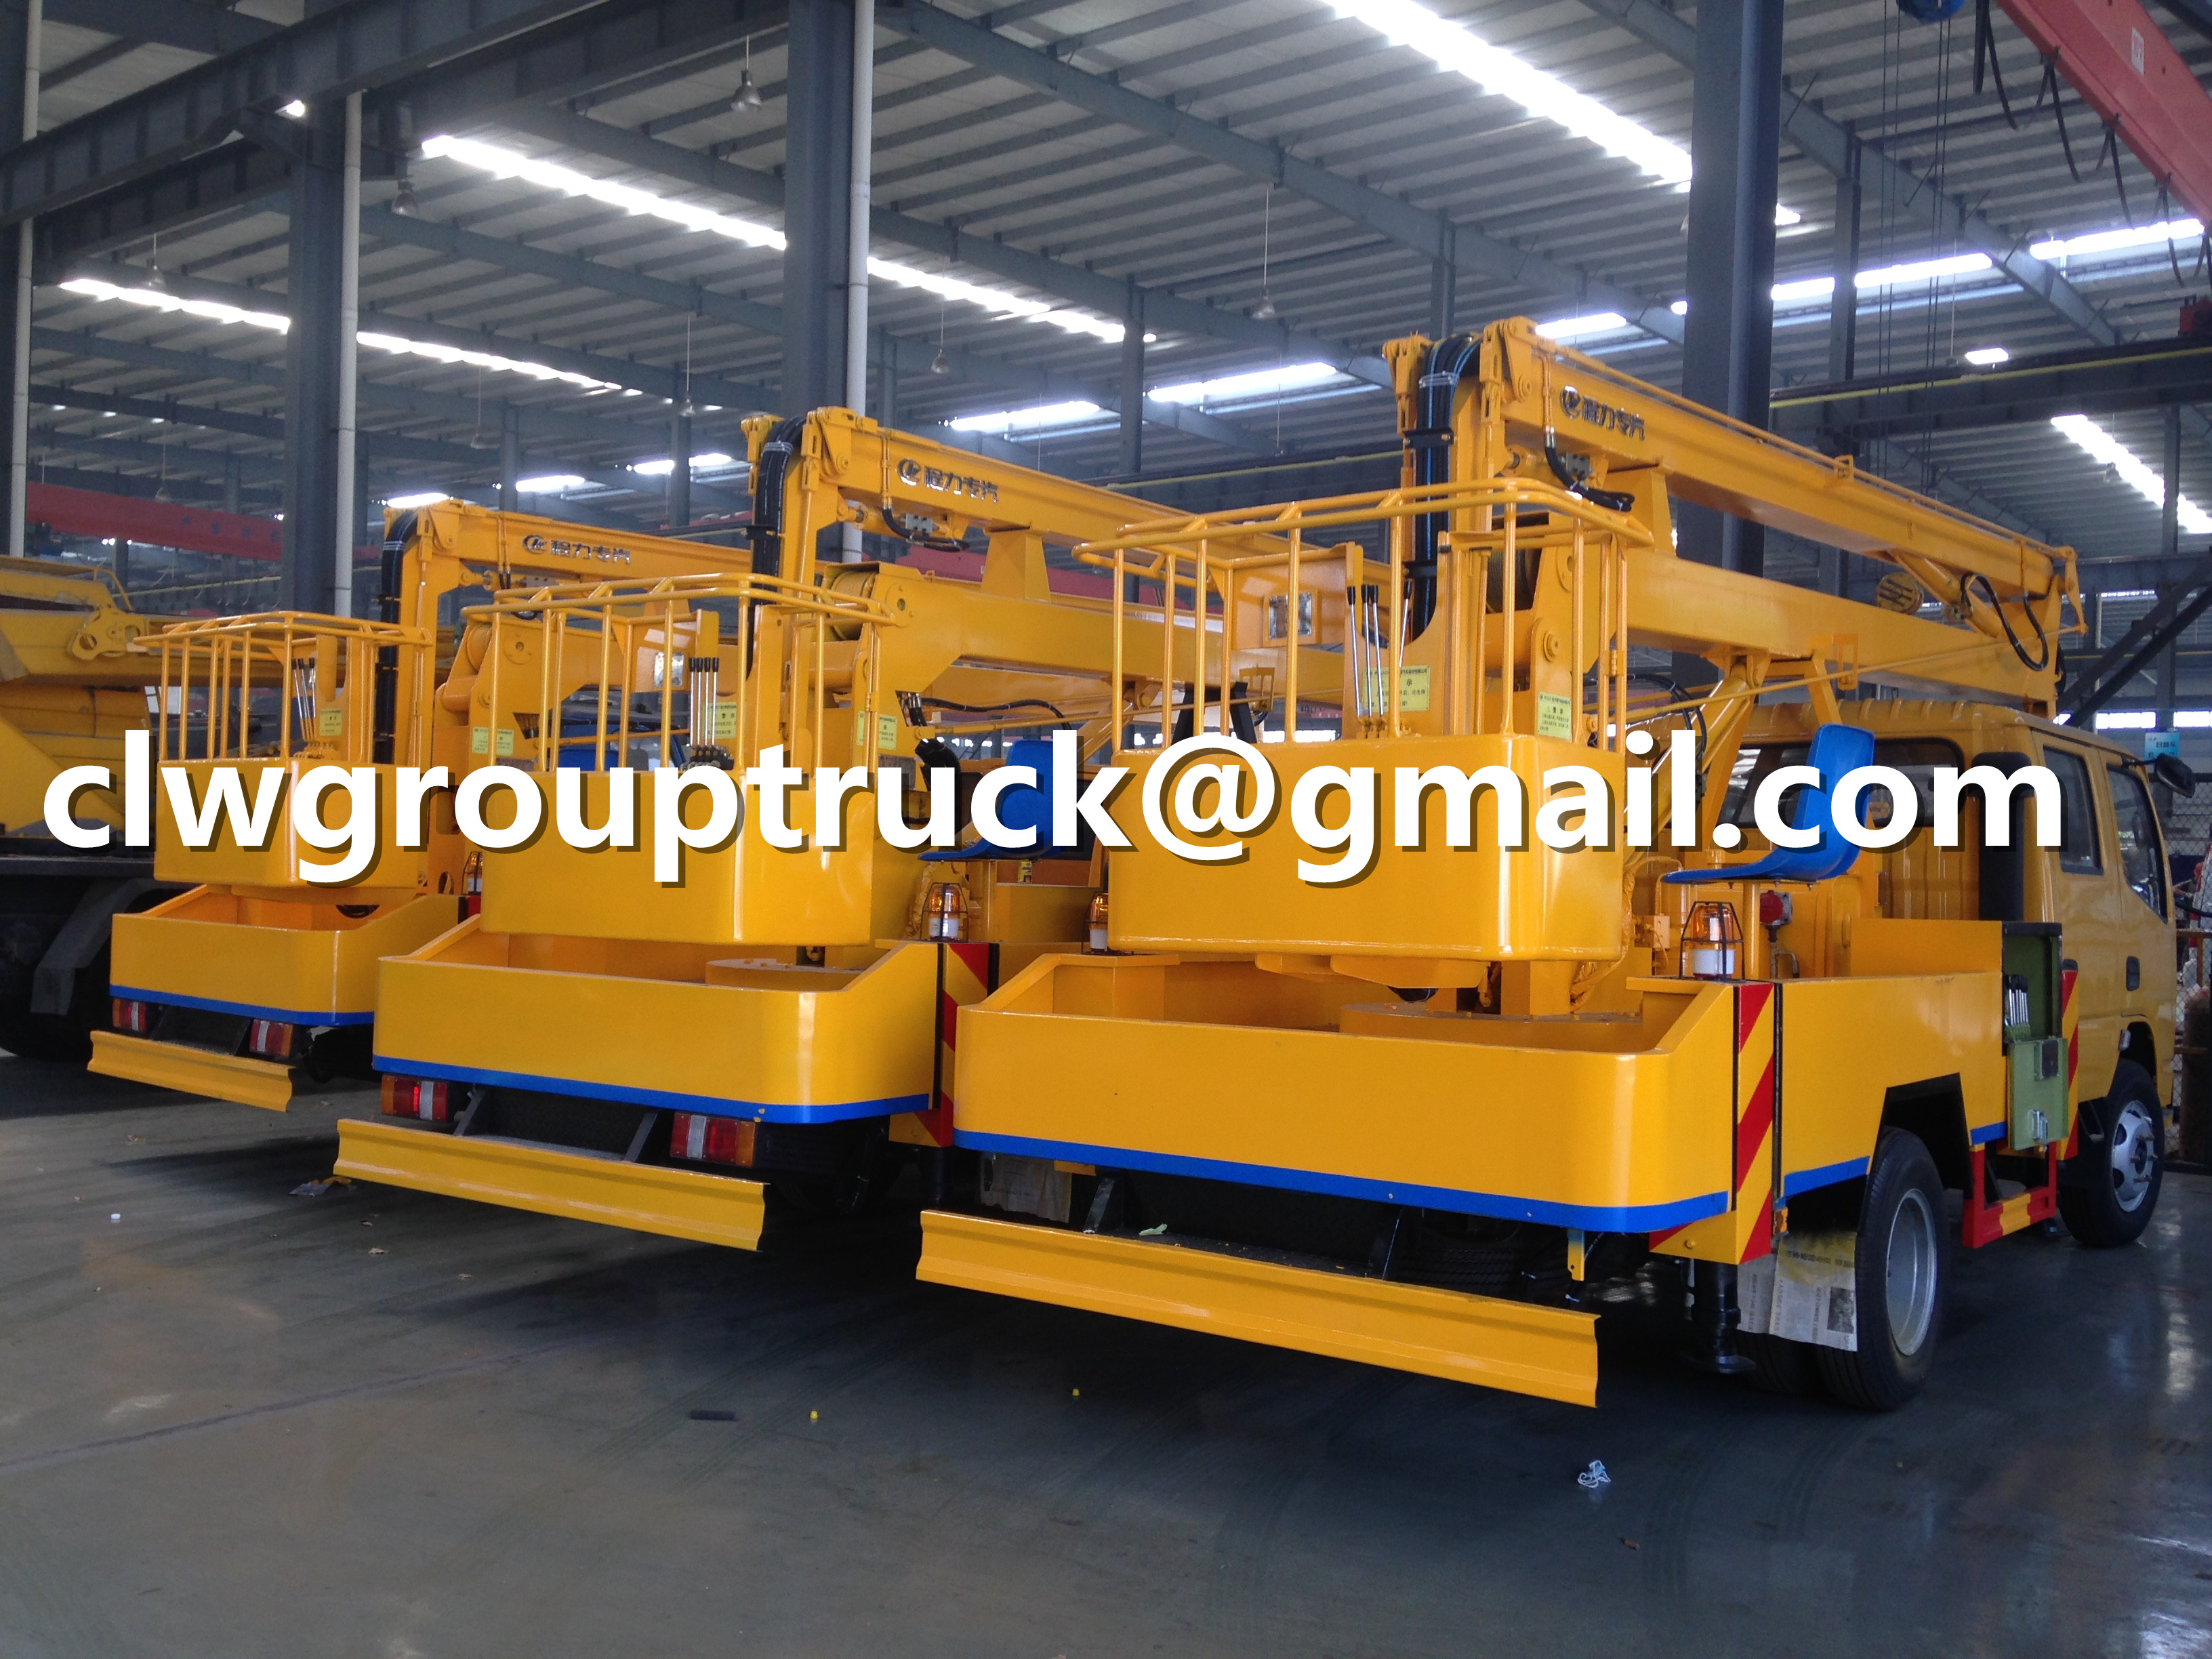 High working truck supplier